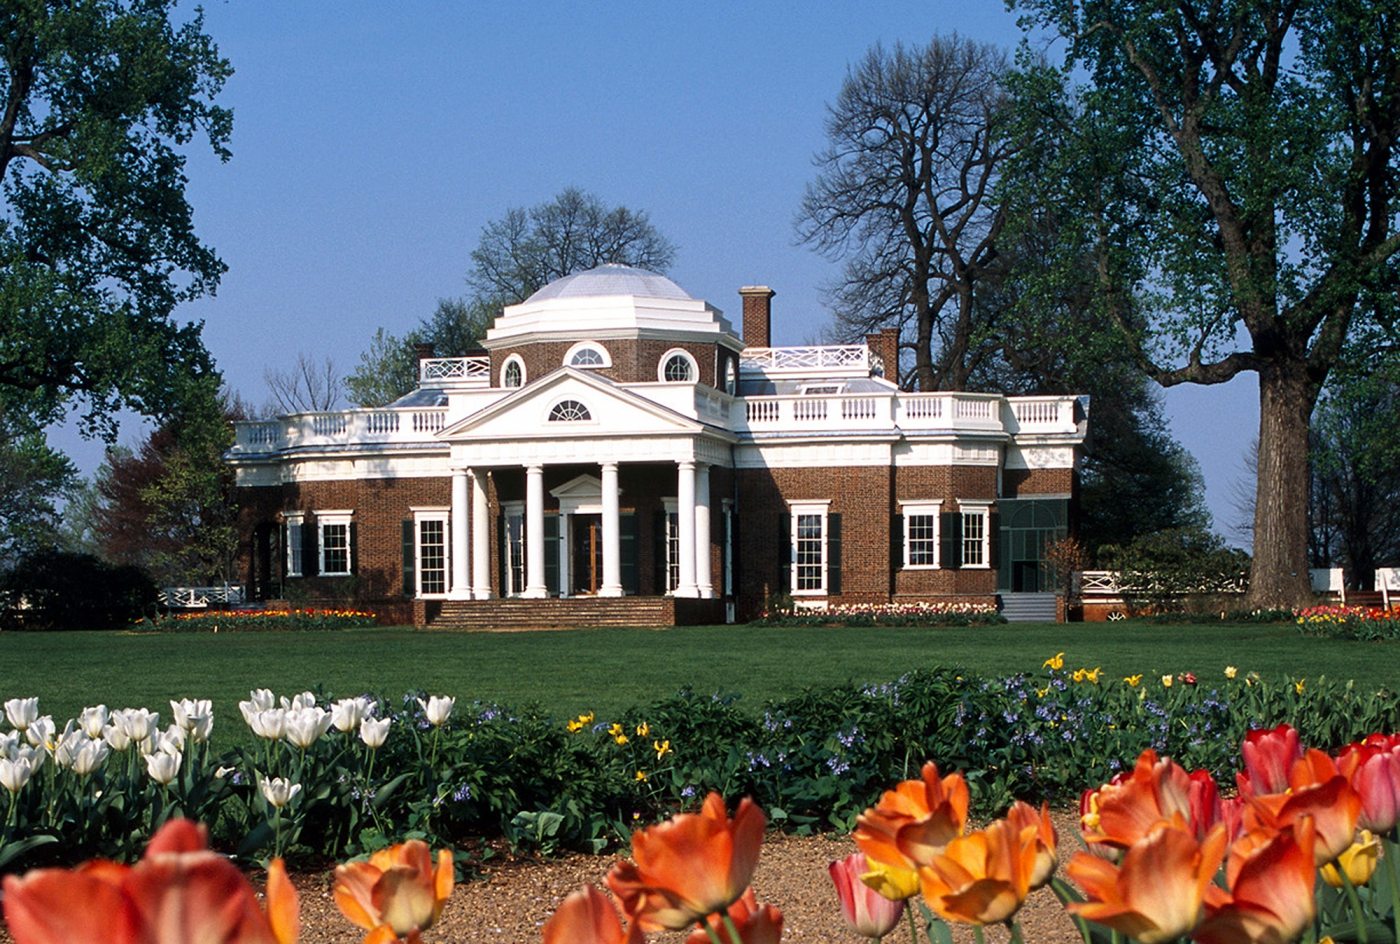 Monticello (KY) United States  city photo : ... Jefferson, the third president of the United States. ©Stephanie Gross